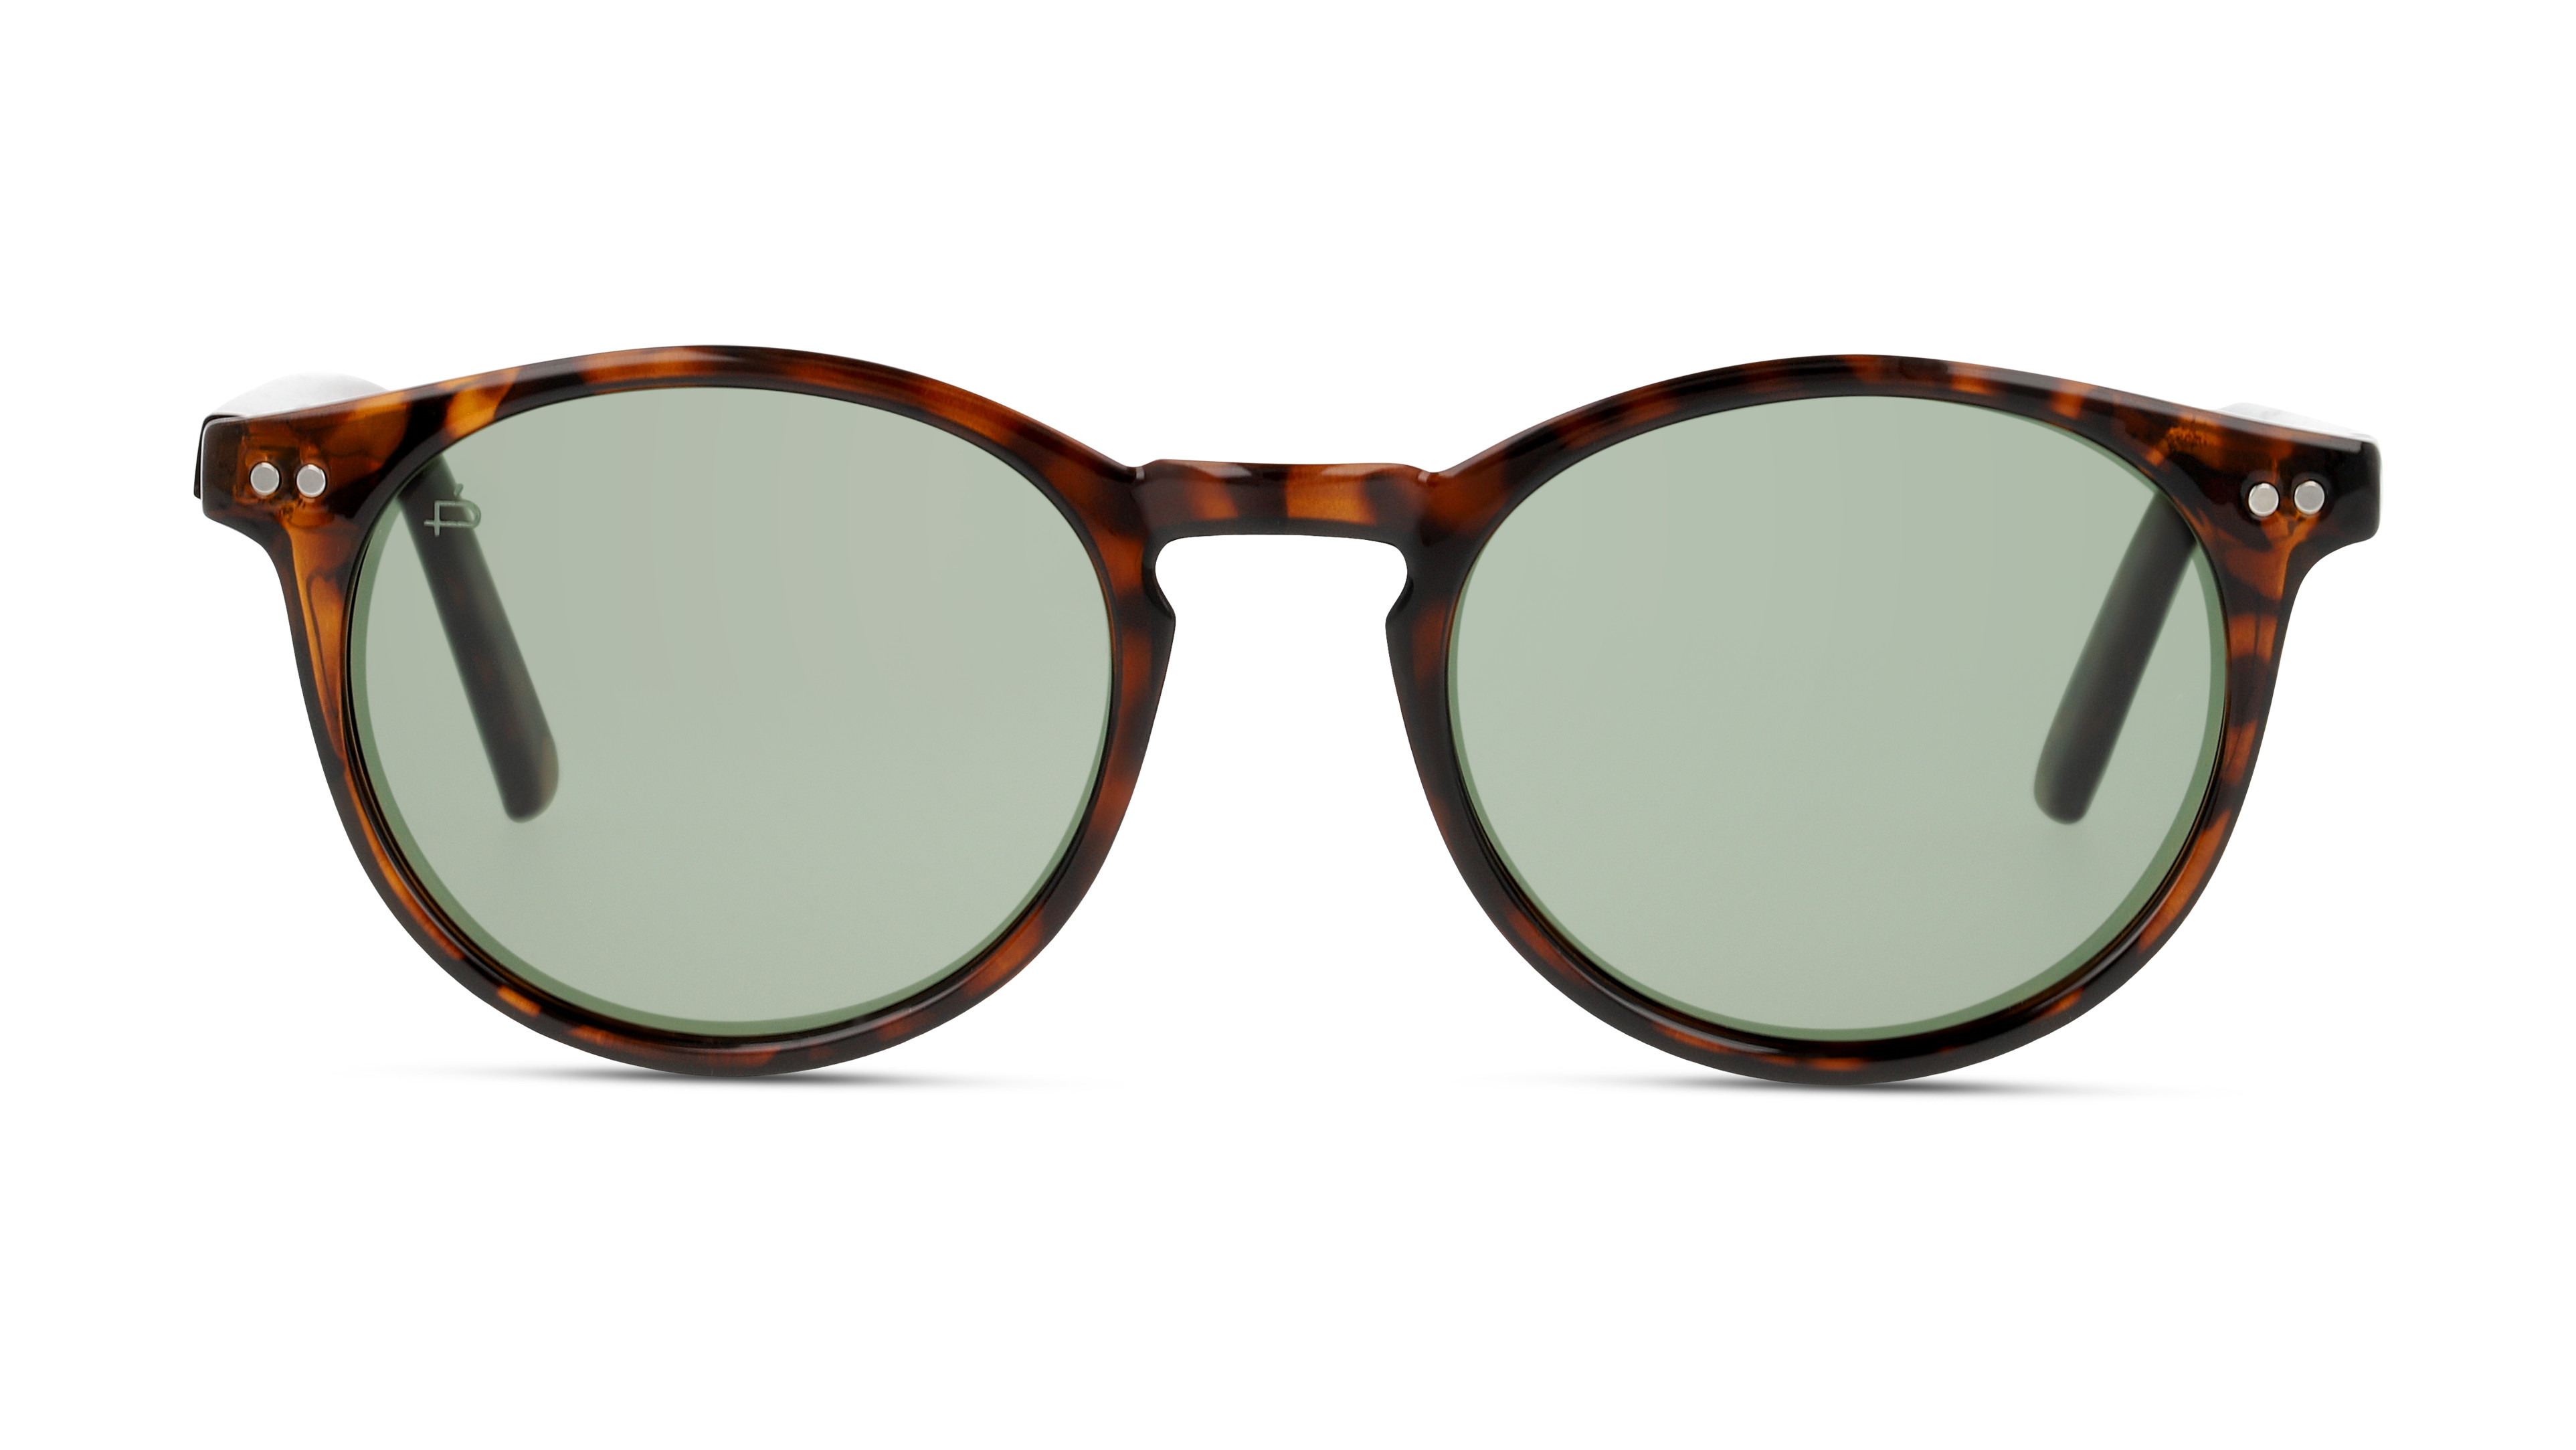 0810036102254-front-prive-revaux-sonnenbrille-the_maestro-the-maestro-brown-havana